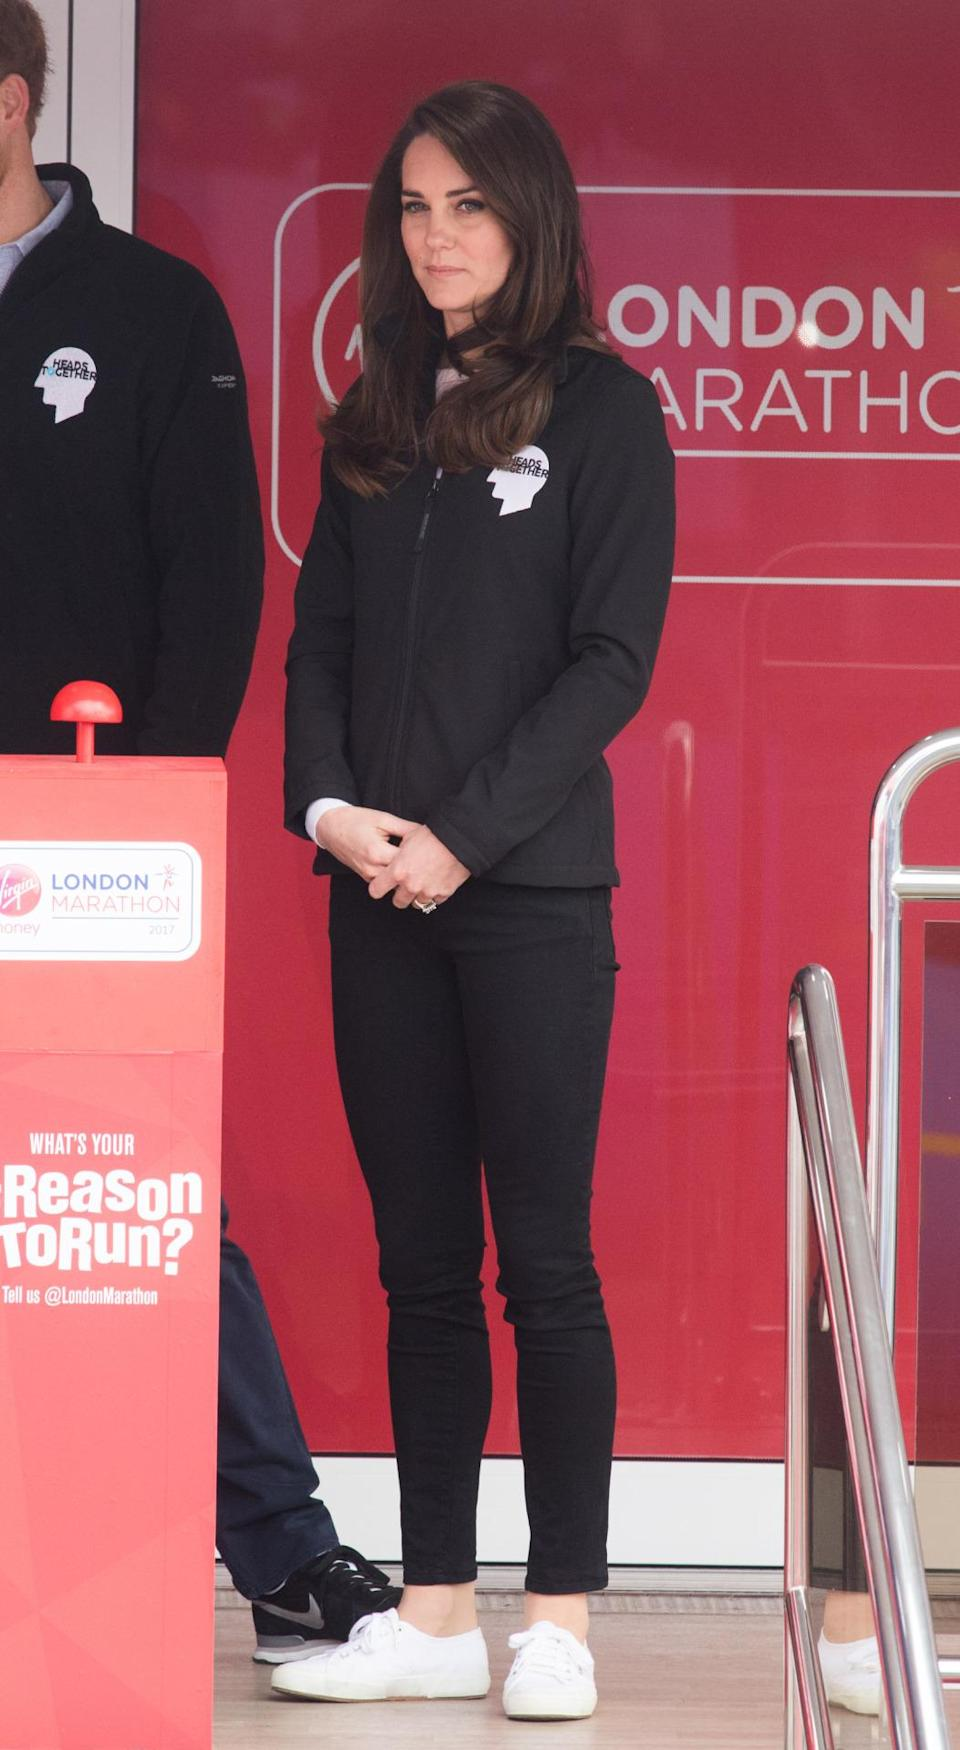 <p>Kate supported runners at the 2017 London Marathon wearing a black jacket branded with the Heads Together logo. (Heads Together is the mental health charity set up by the Duchess and Princes William and Harry.) She paired her off-duty look with skinny black jeans and a white pair of Superga trainers. </p><p><i>[Photo: PA]</i> </p>